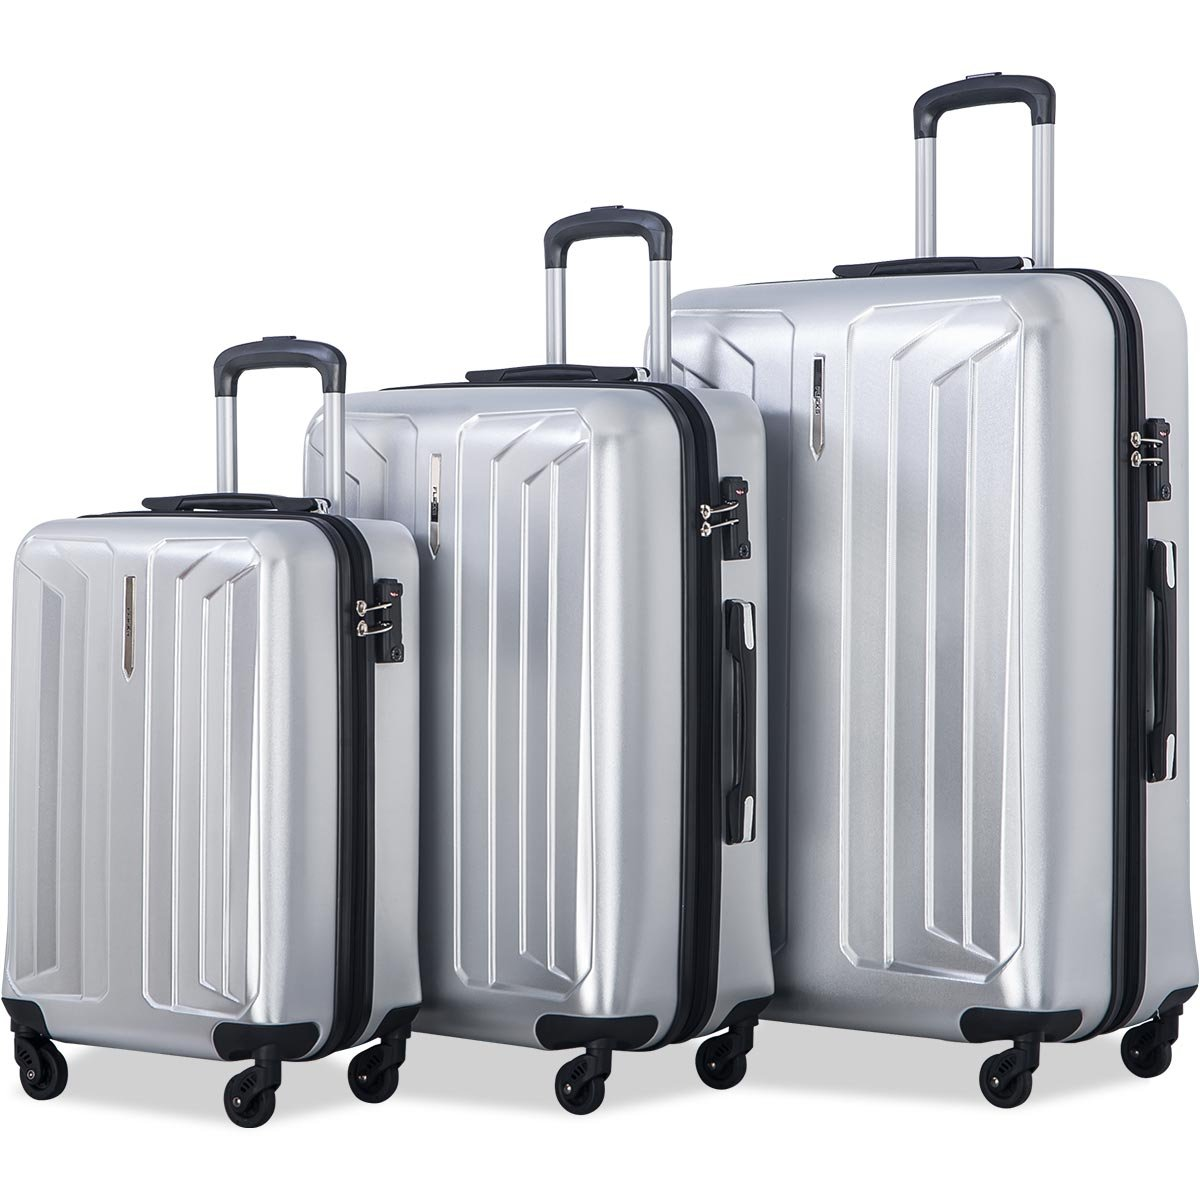 Flieks Luggage 3 Piece Sets Spinner Suitcase with TSA Lock, Lightweight 20 24 28 (Silver)